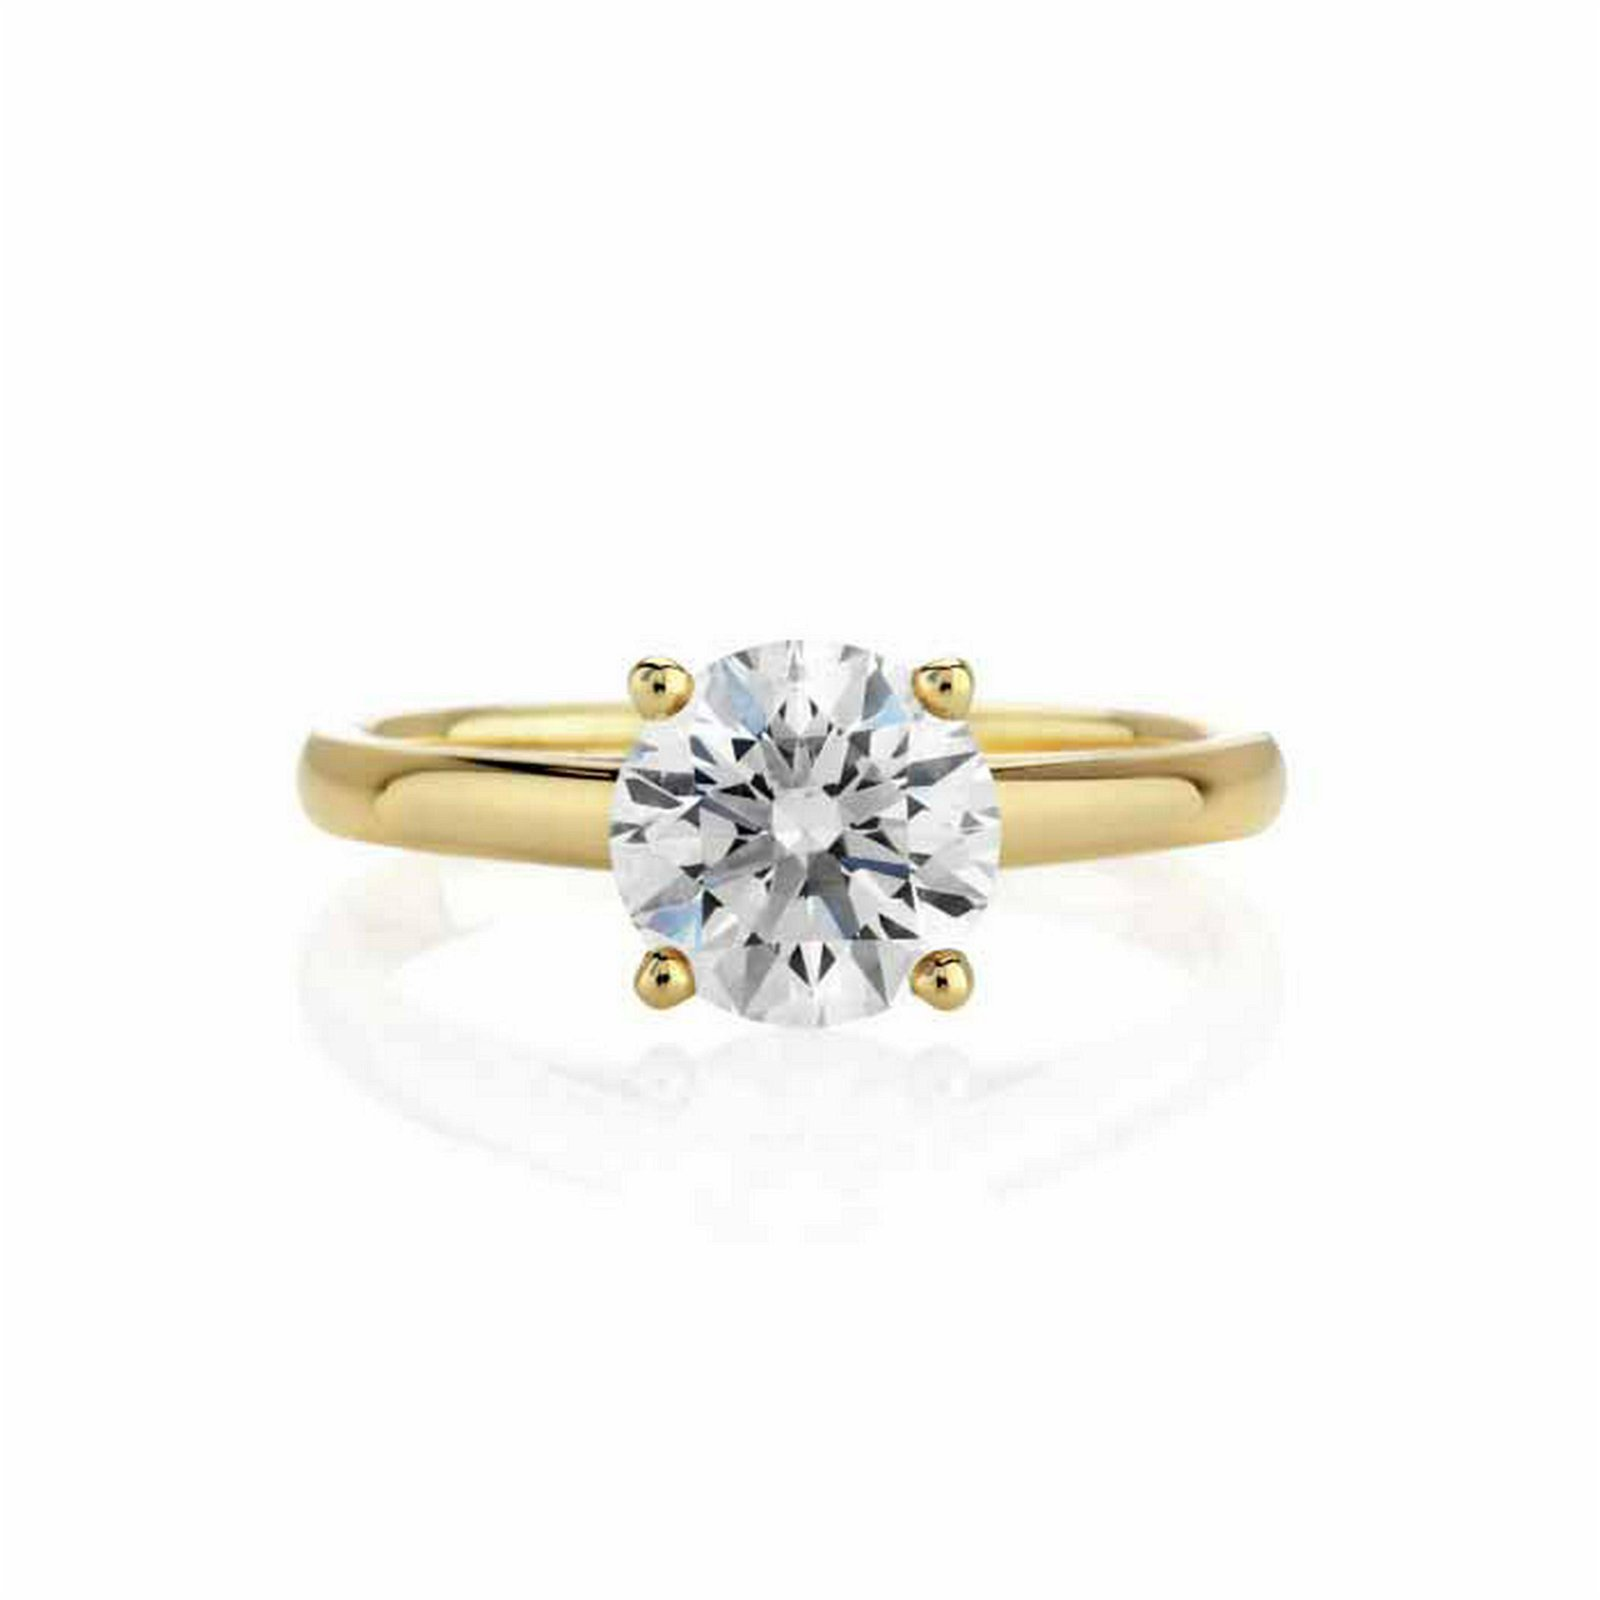 CERTIFIED 2 CTW D/VS1 ROUND DIAMOND SOLITAIRE RING IN 1